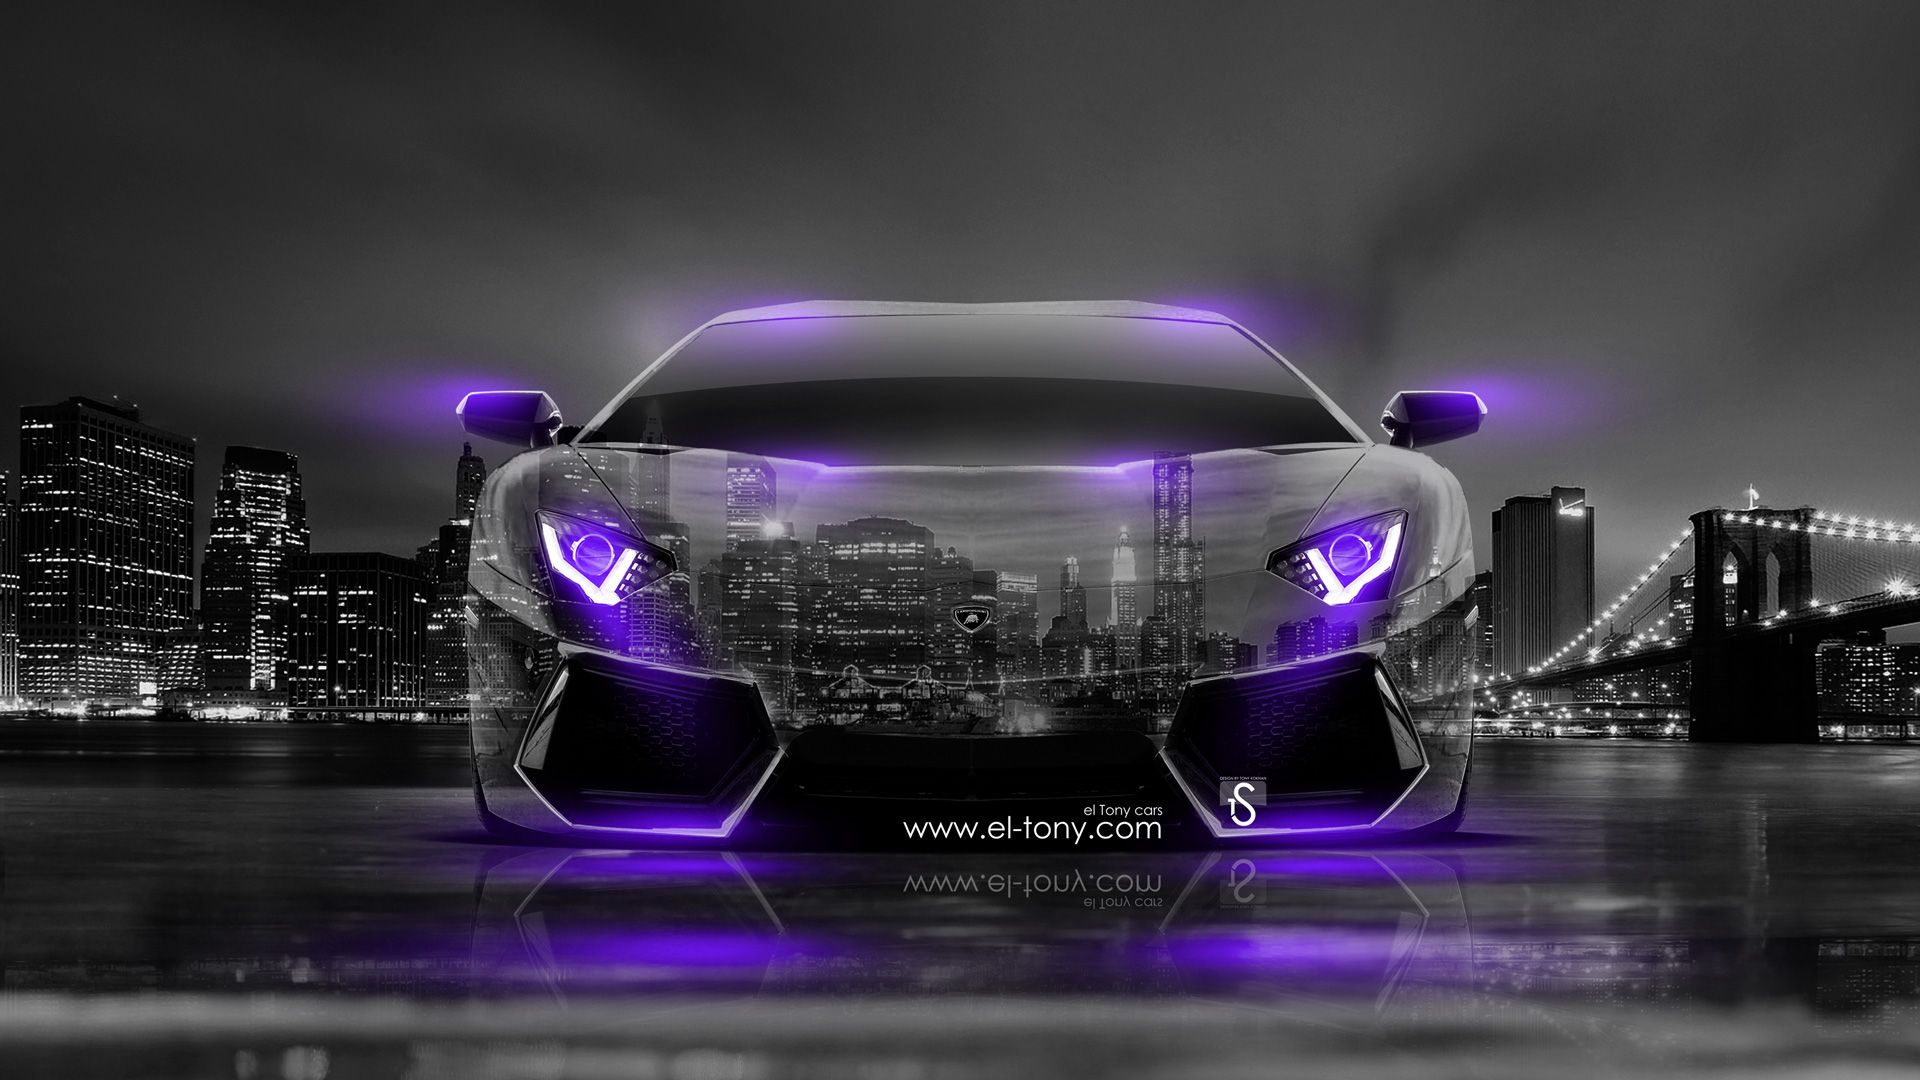 Superior Black Lamborghini With Neon Blue Lights | Lamborghini Aventador Front  Crystal City Car 2014 Violet Neon Design ... | Cars | Pinterest | City Car,  ...